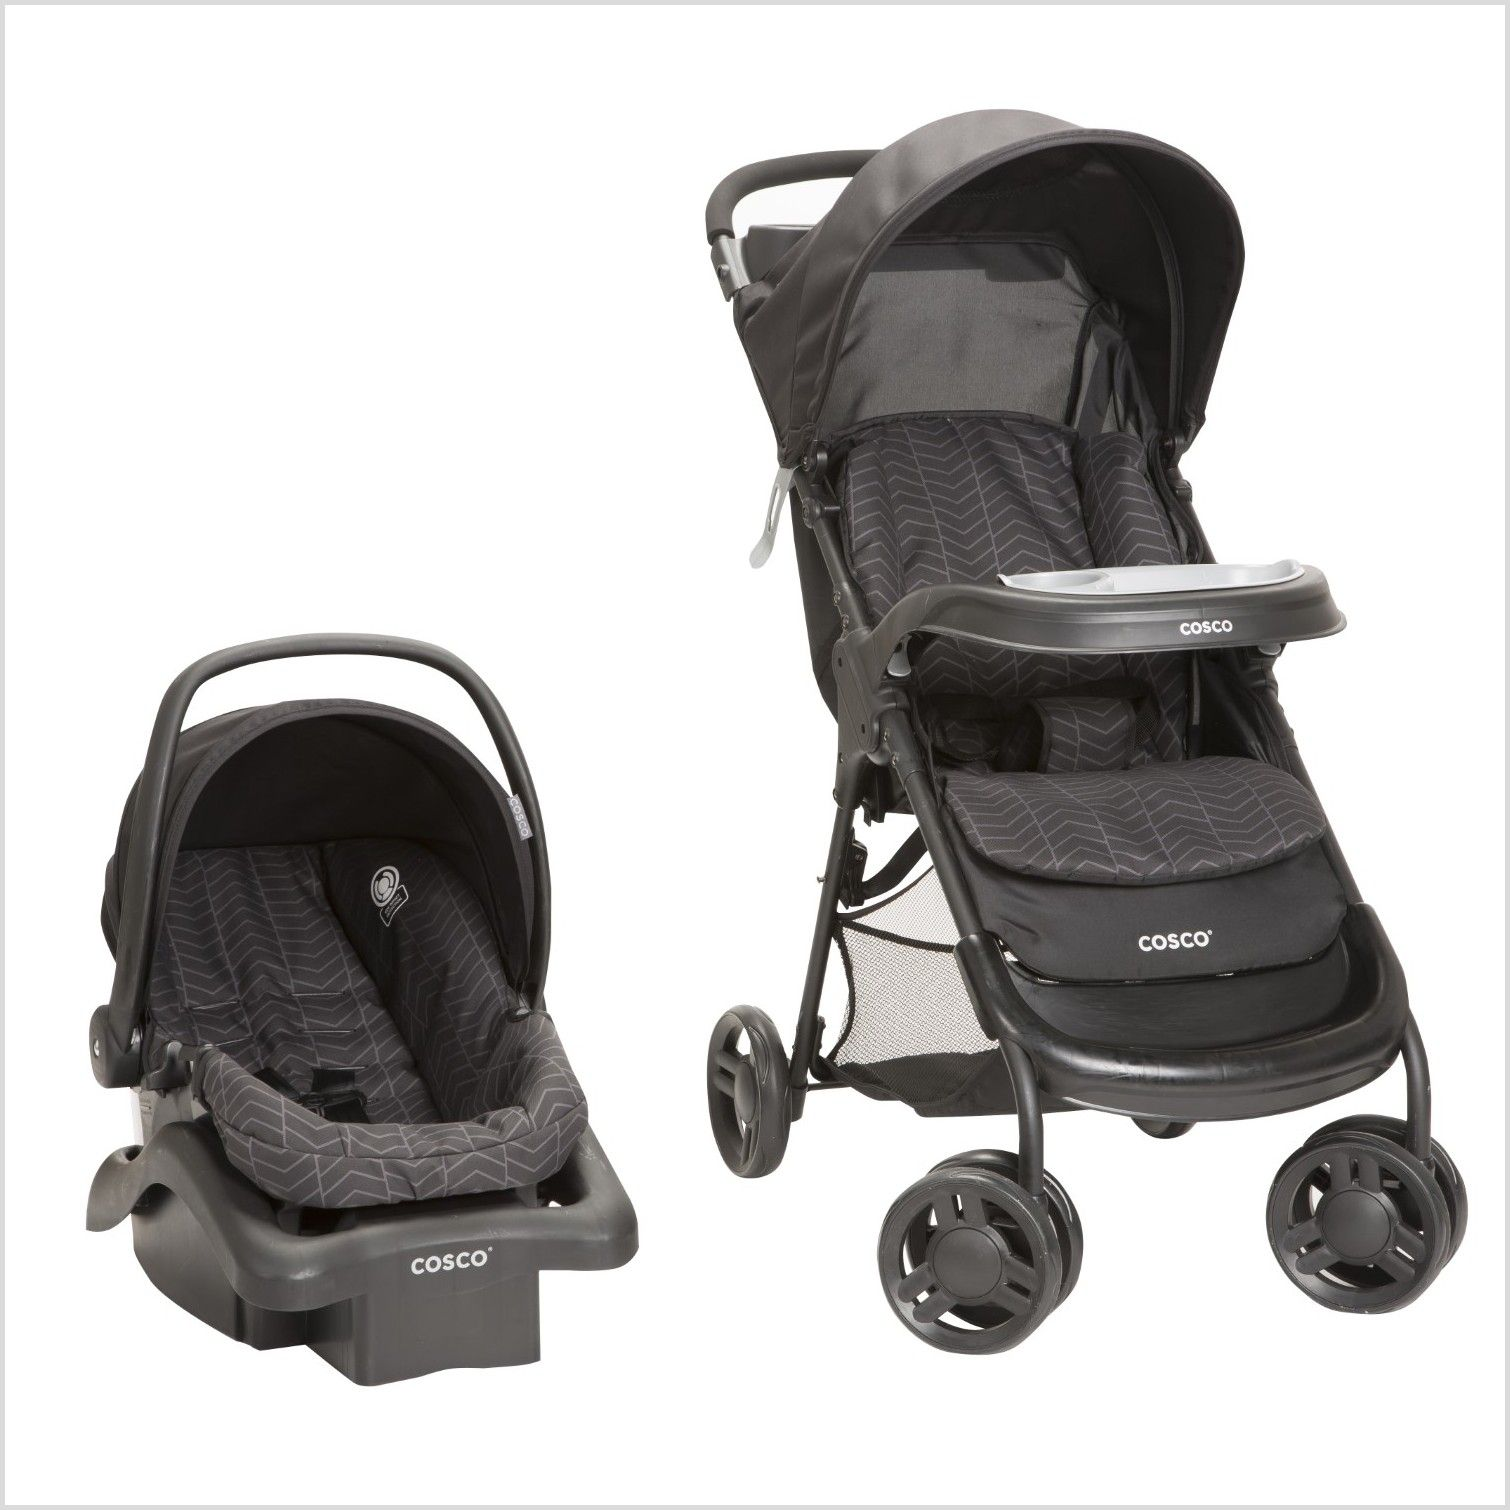 79 reference of cosco car seat and stroller set in 2020